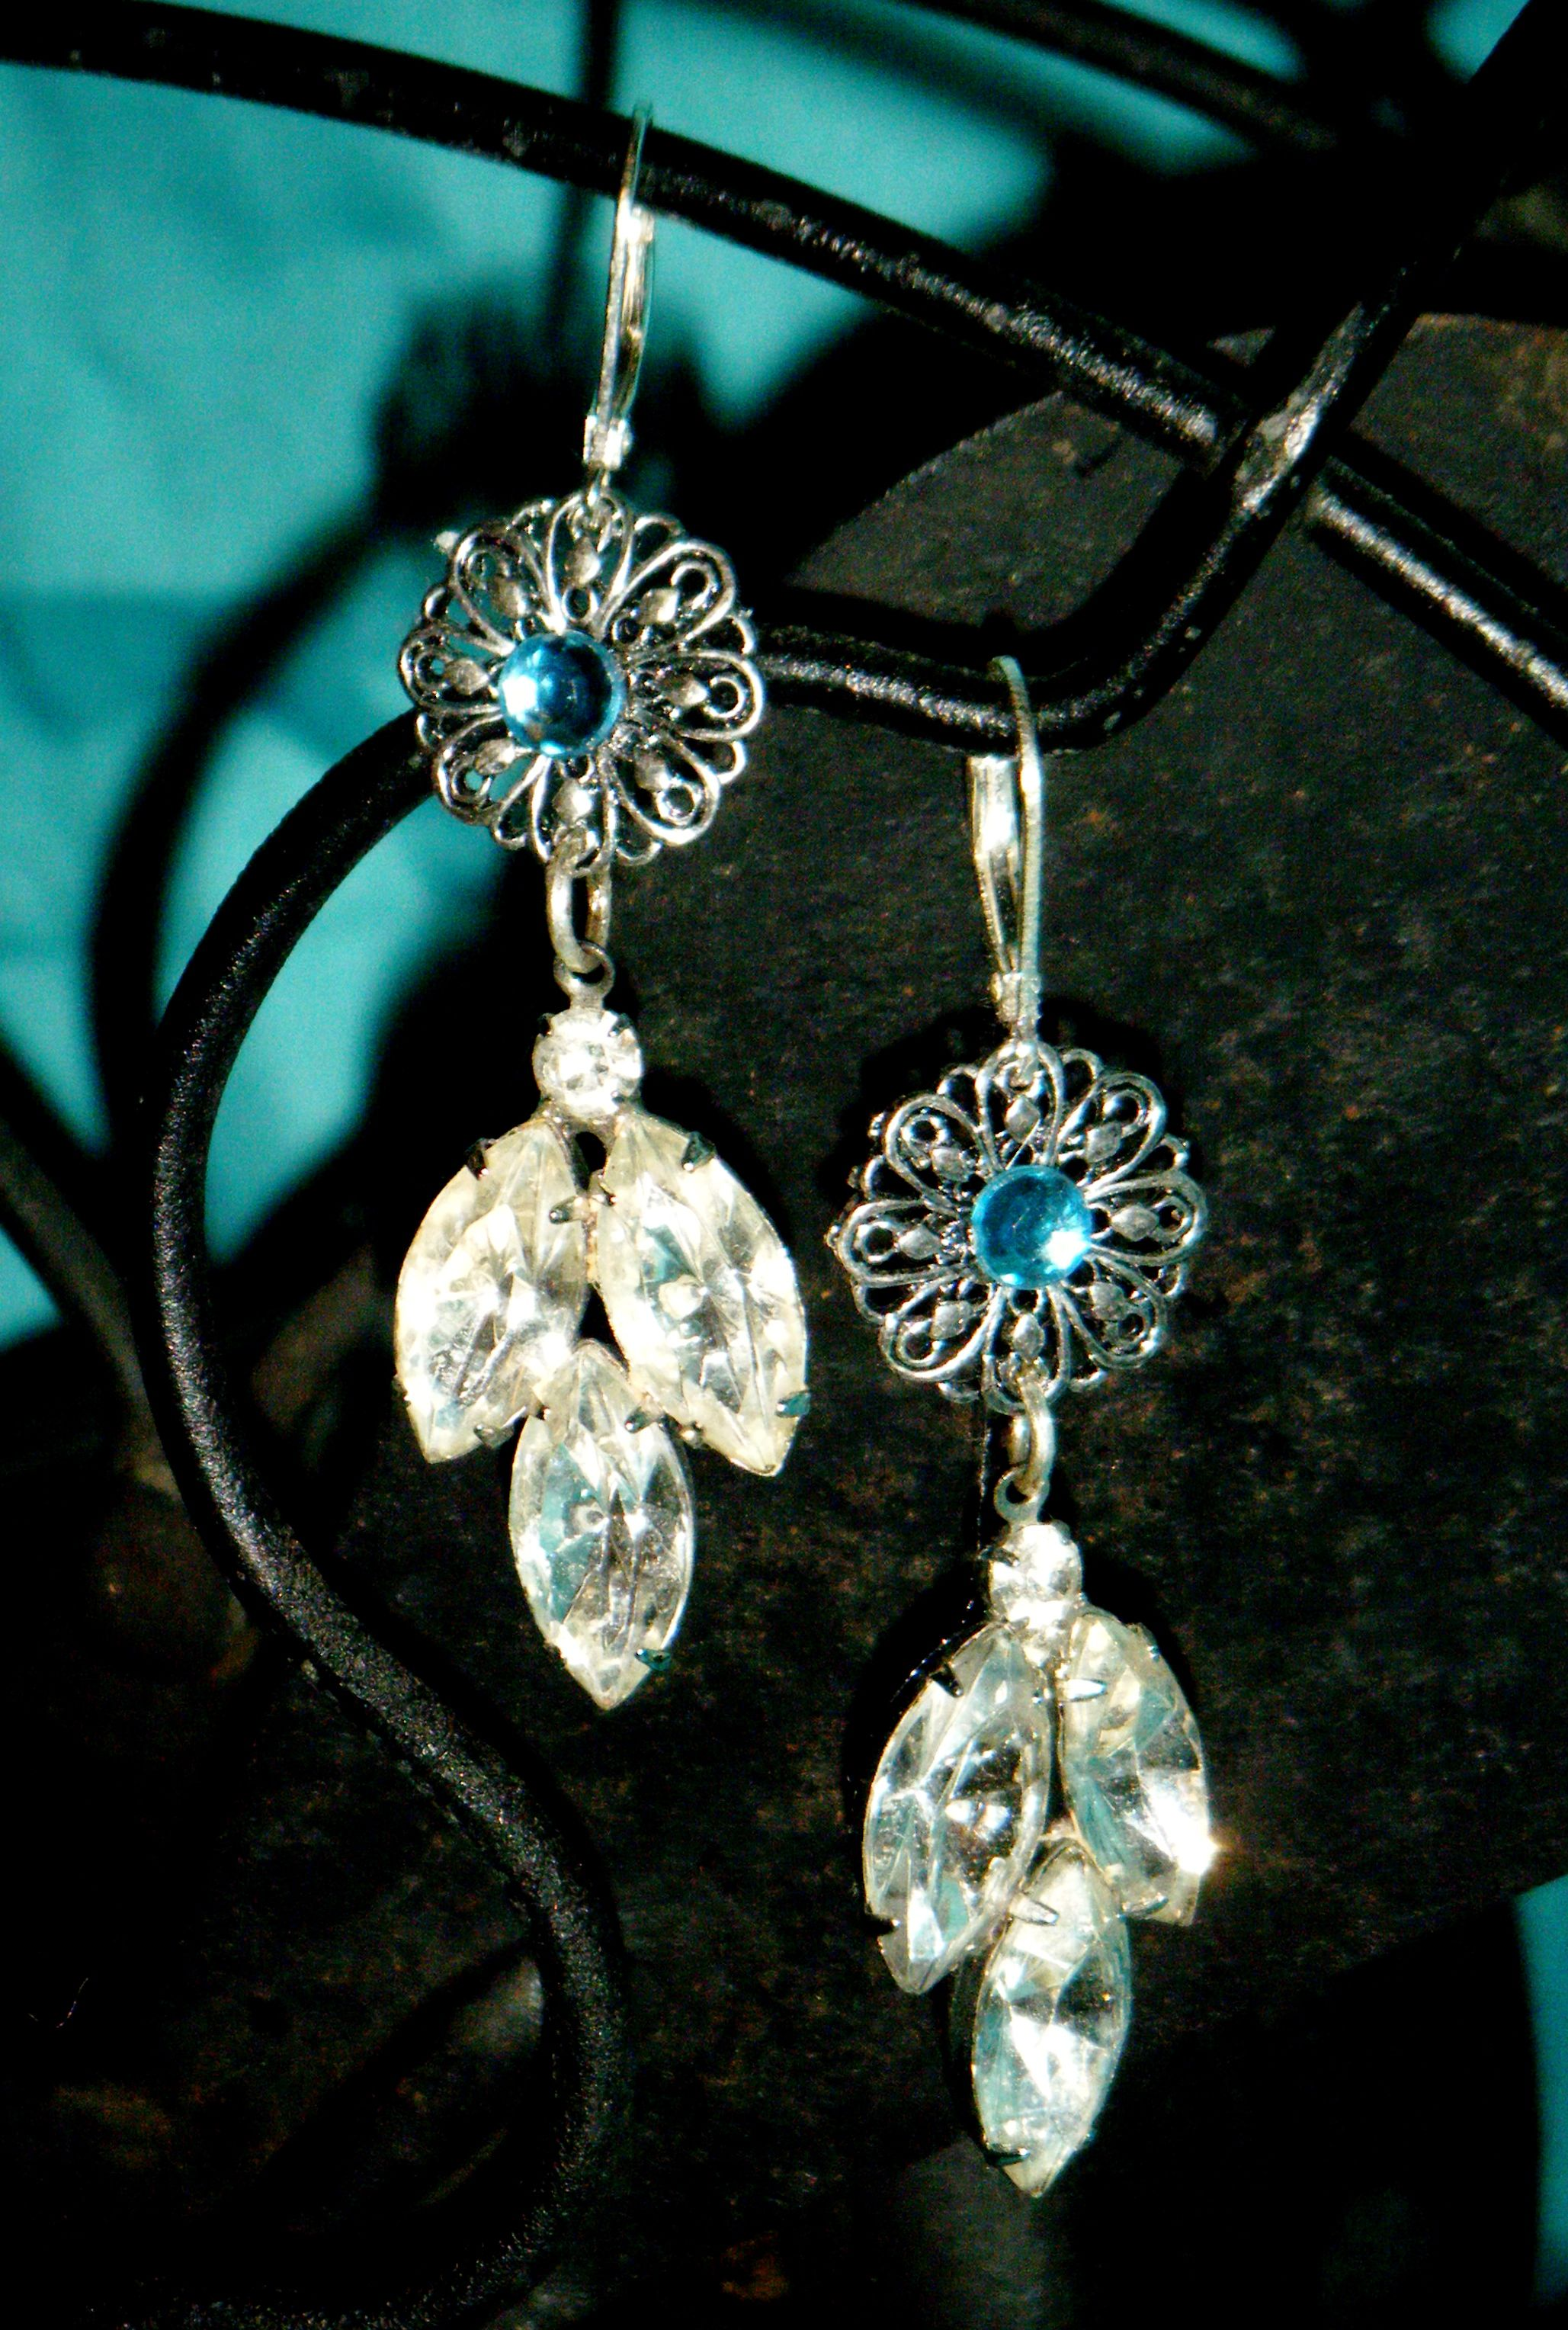 Vintage clip-on earring pieces added on to silver toned metal stampings with blue rhinestone centers, on sterling silver leverbacks